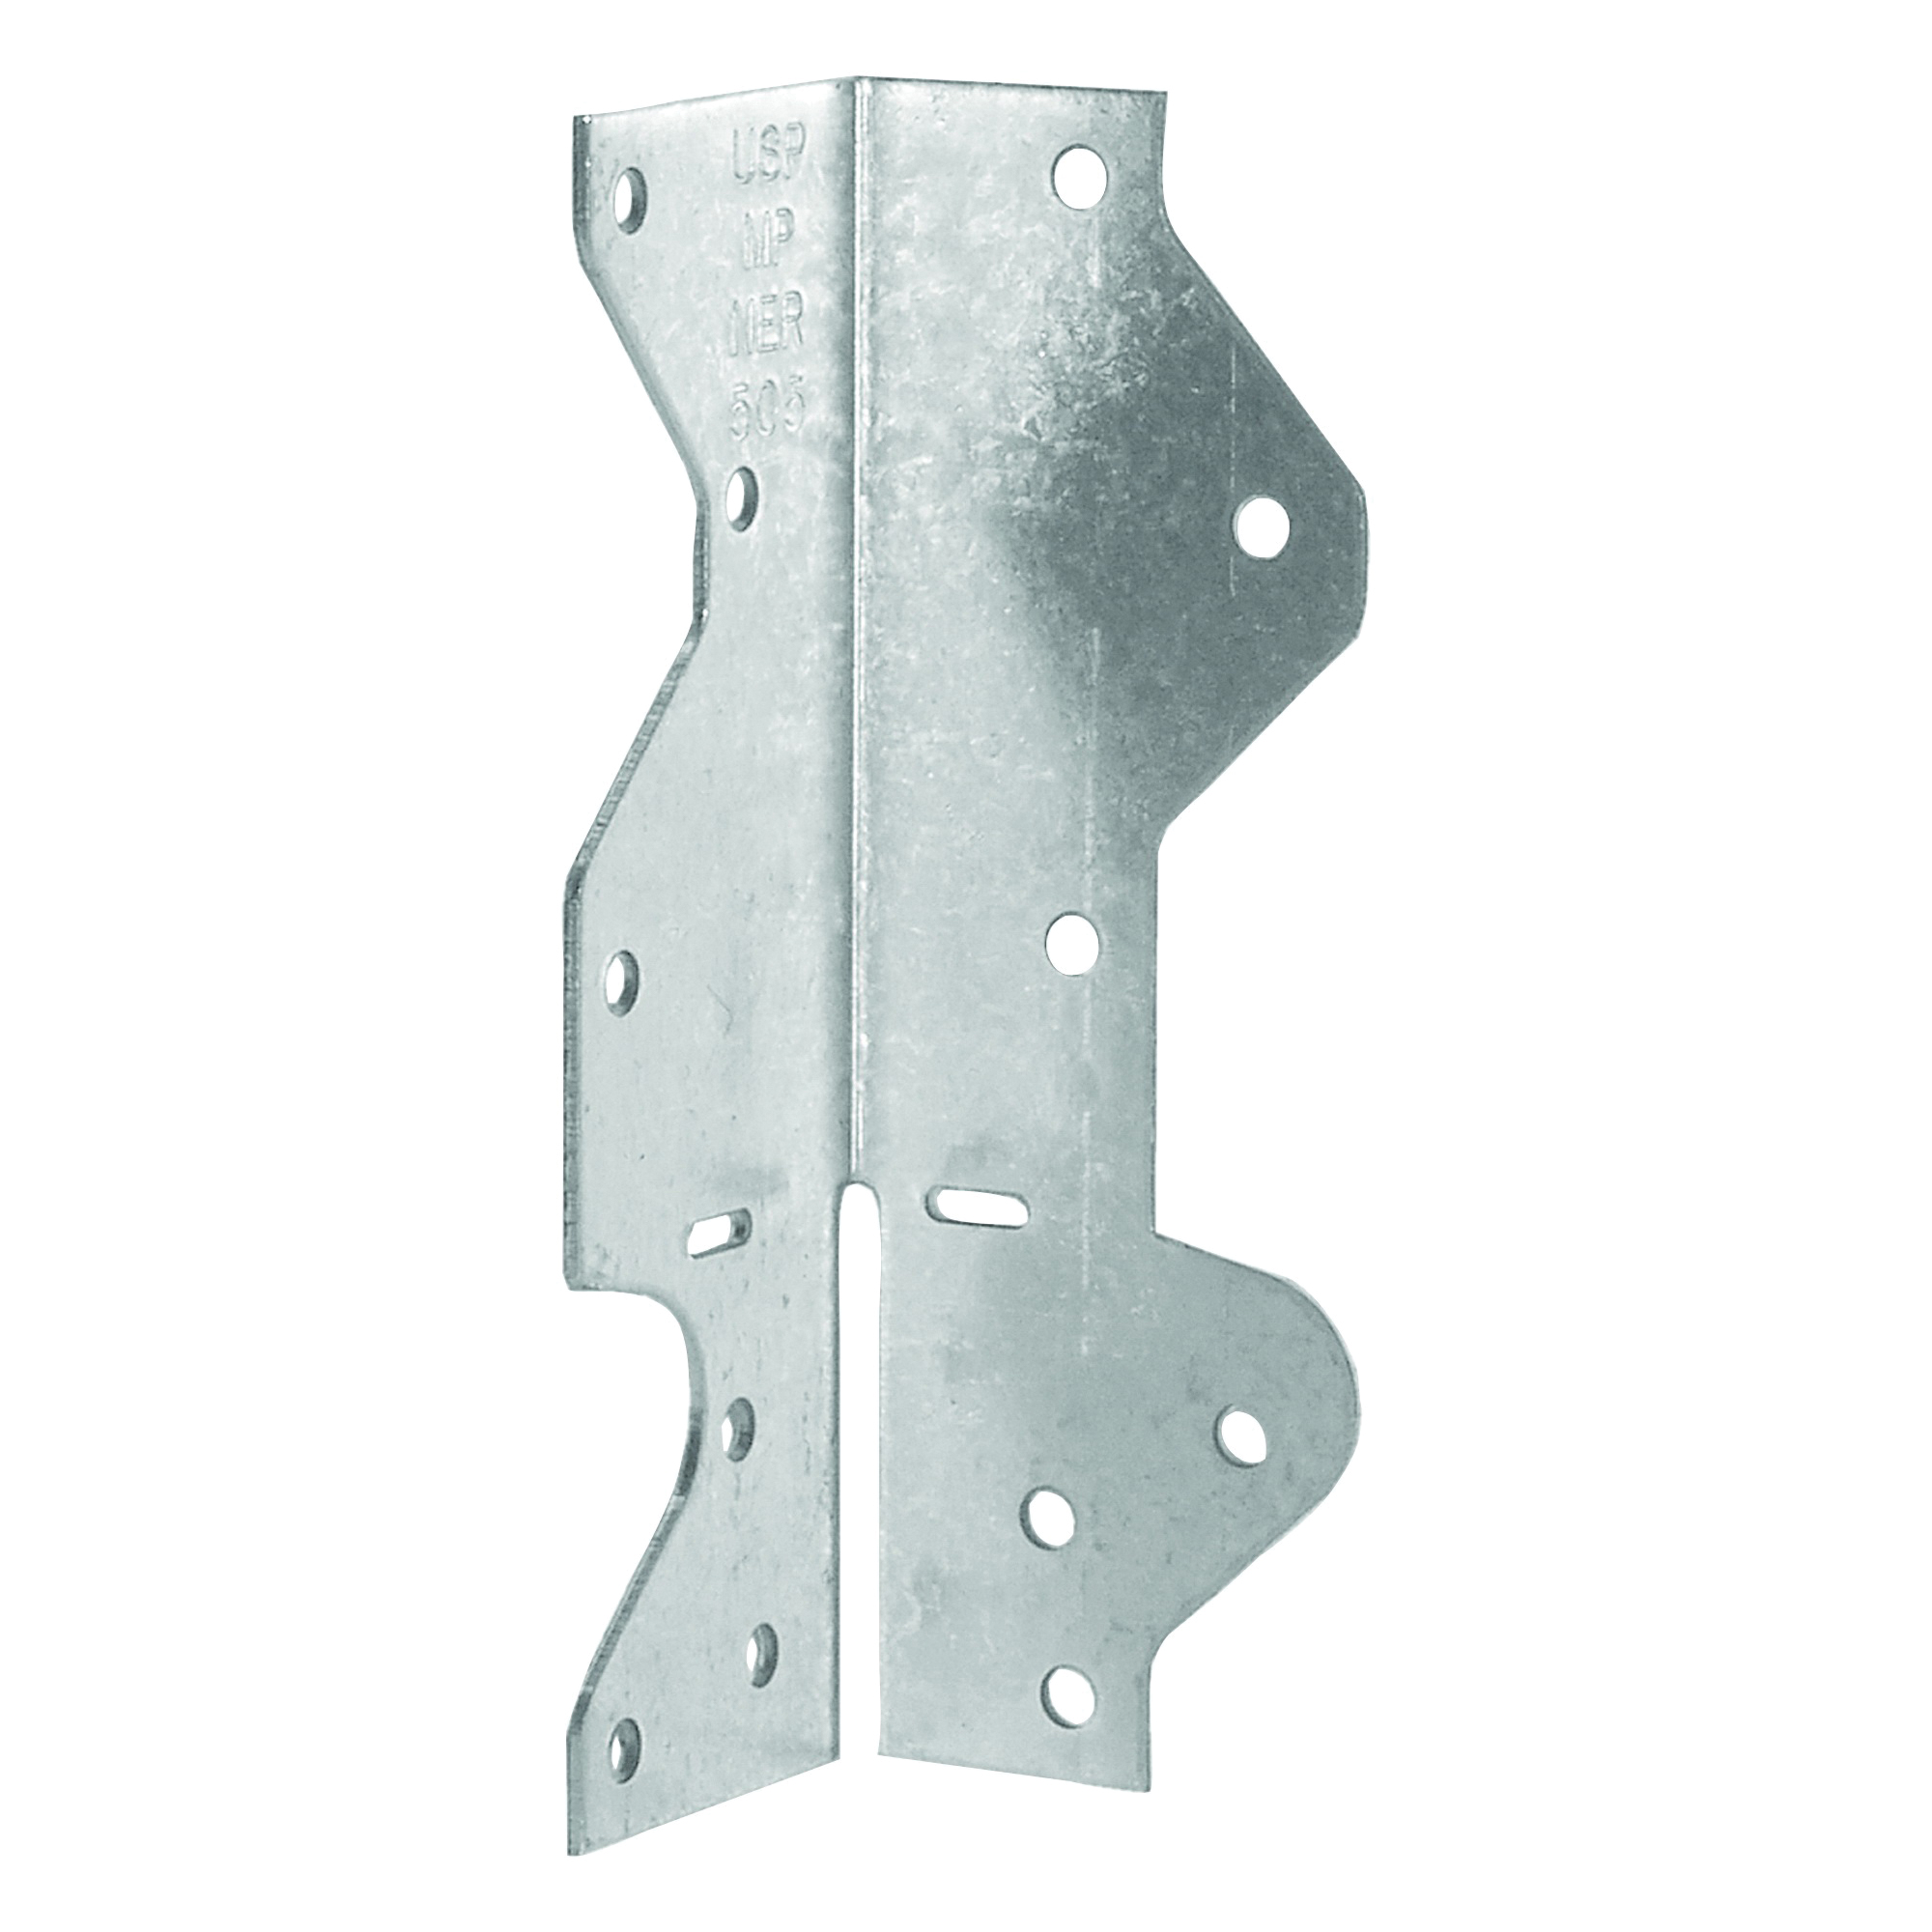 Picture of MiTek MPA1-TZ Framing Angle, 1-1/2 in W, 1-7/16 in D, 4-1/2 in H, Steel, Zinc